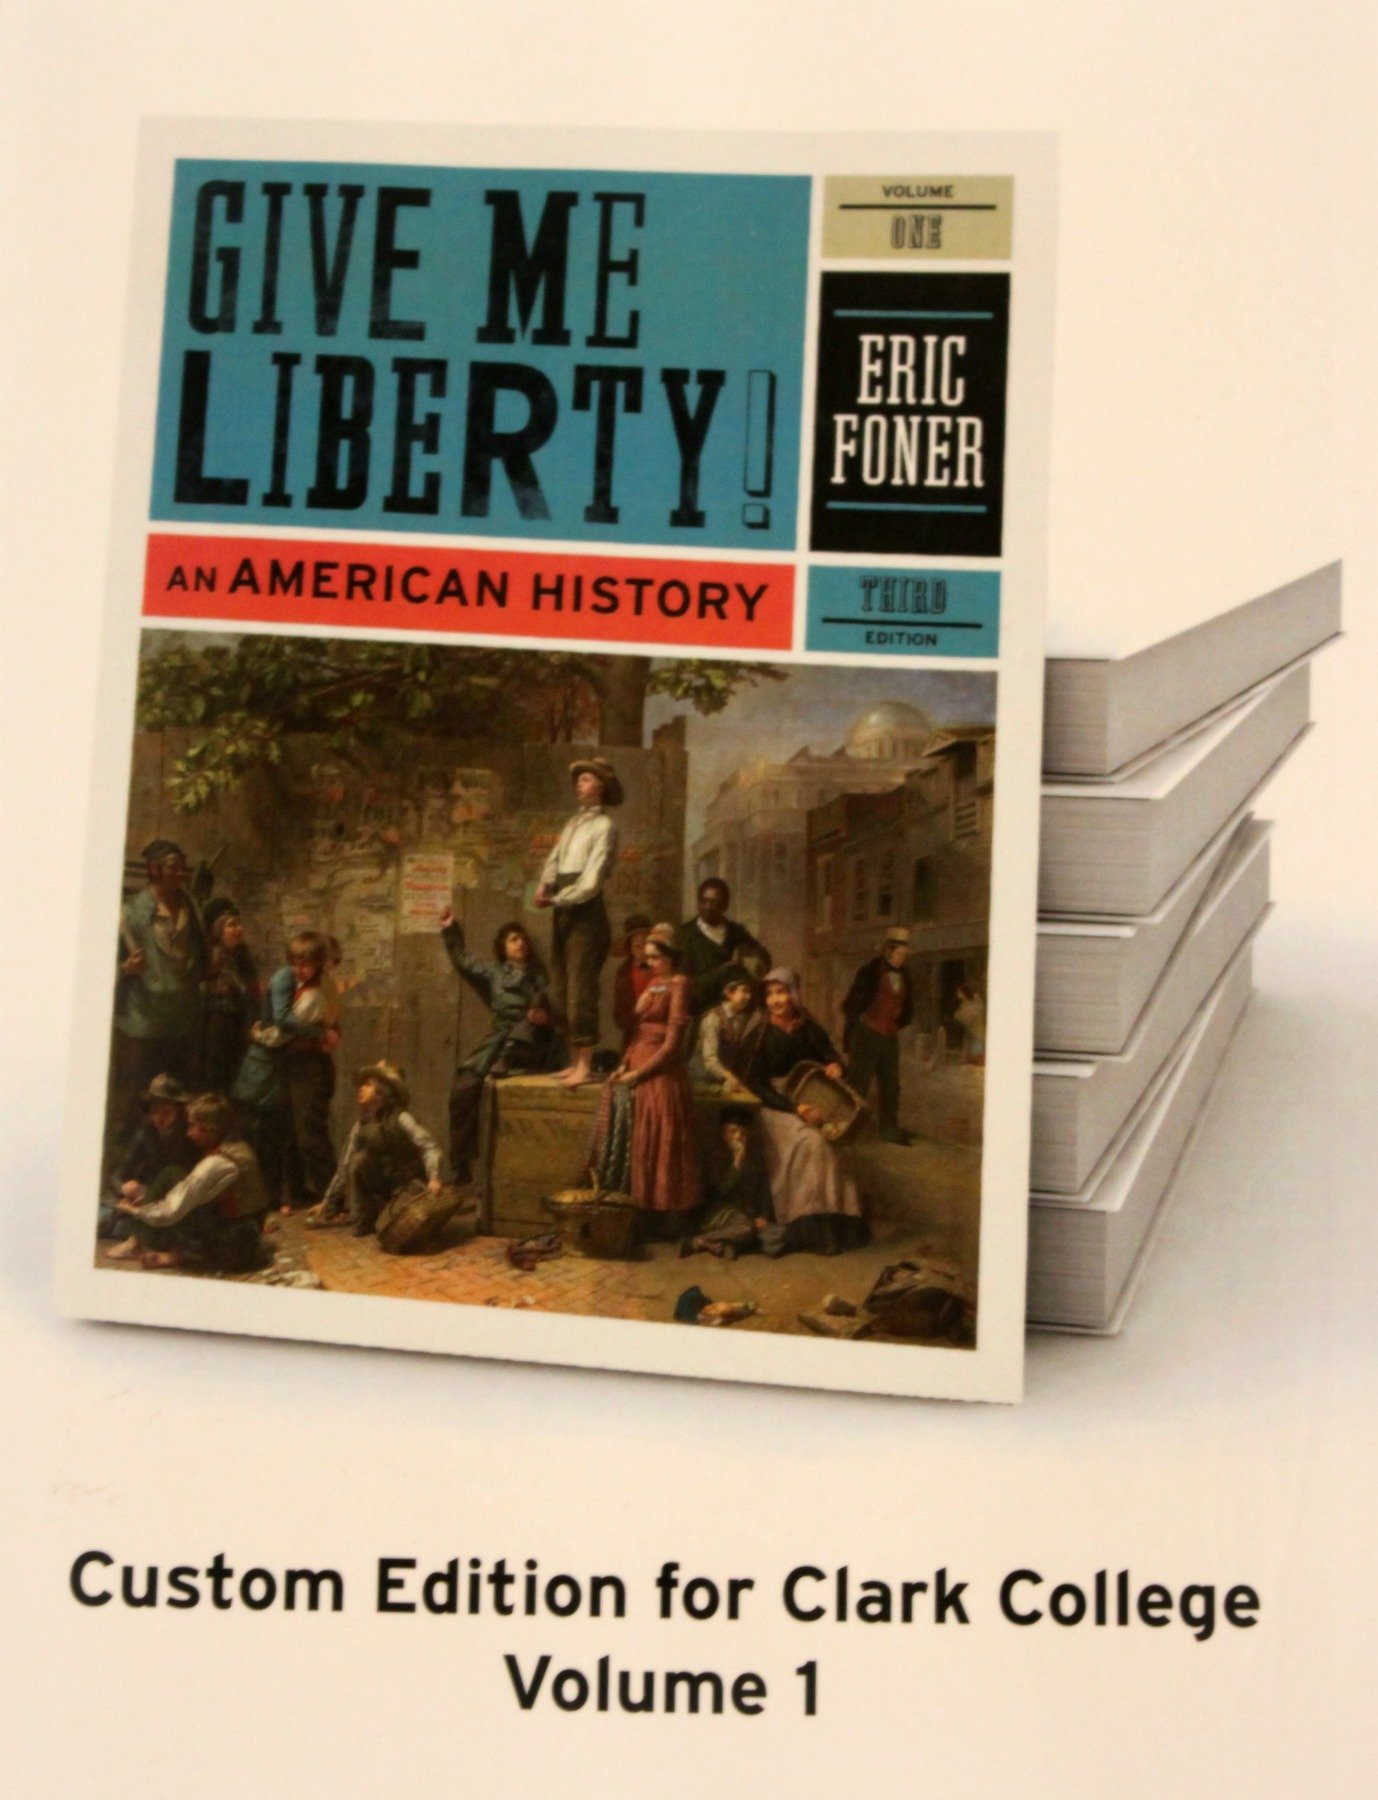 Give me liberty an american history eric foner custom edition give me liberty an american history eric foner custom edition for clark college 9780393156478 amazon books fandeluxe